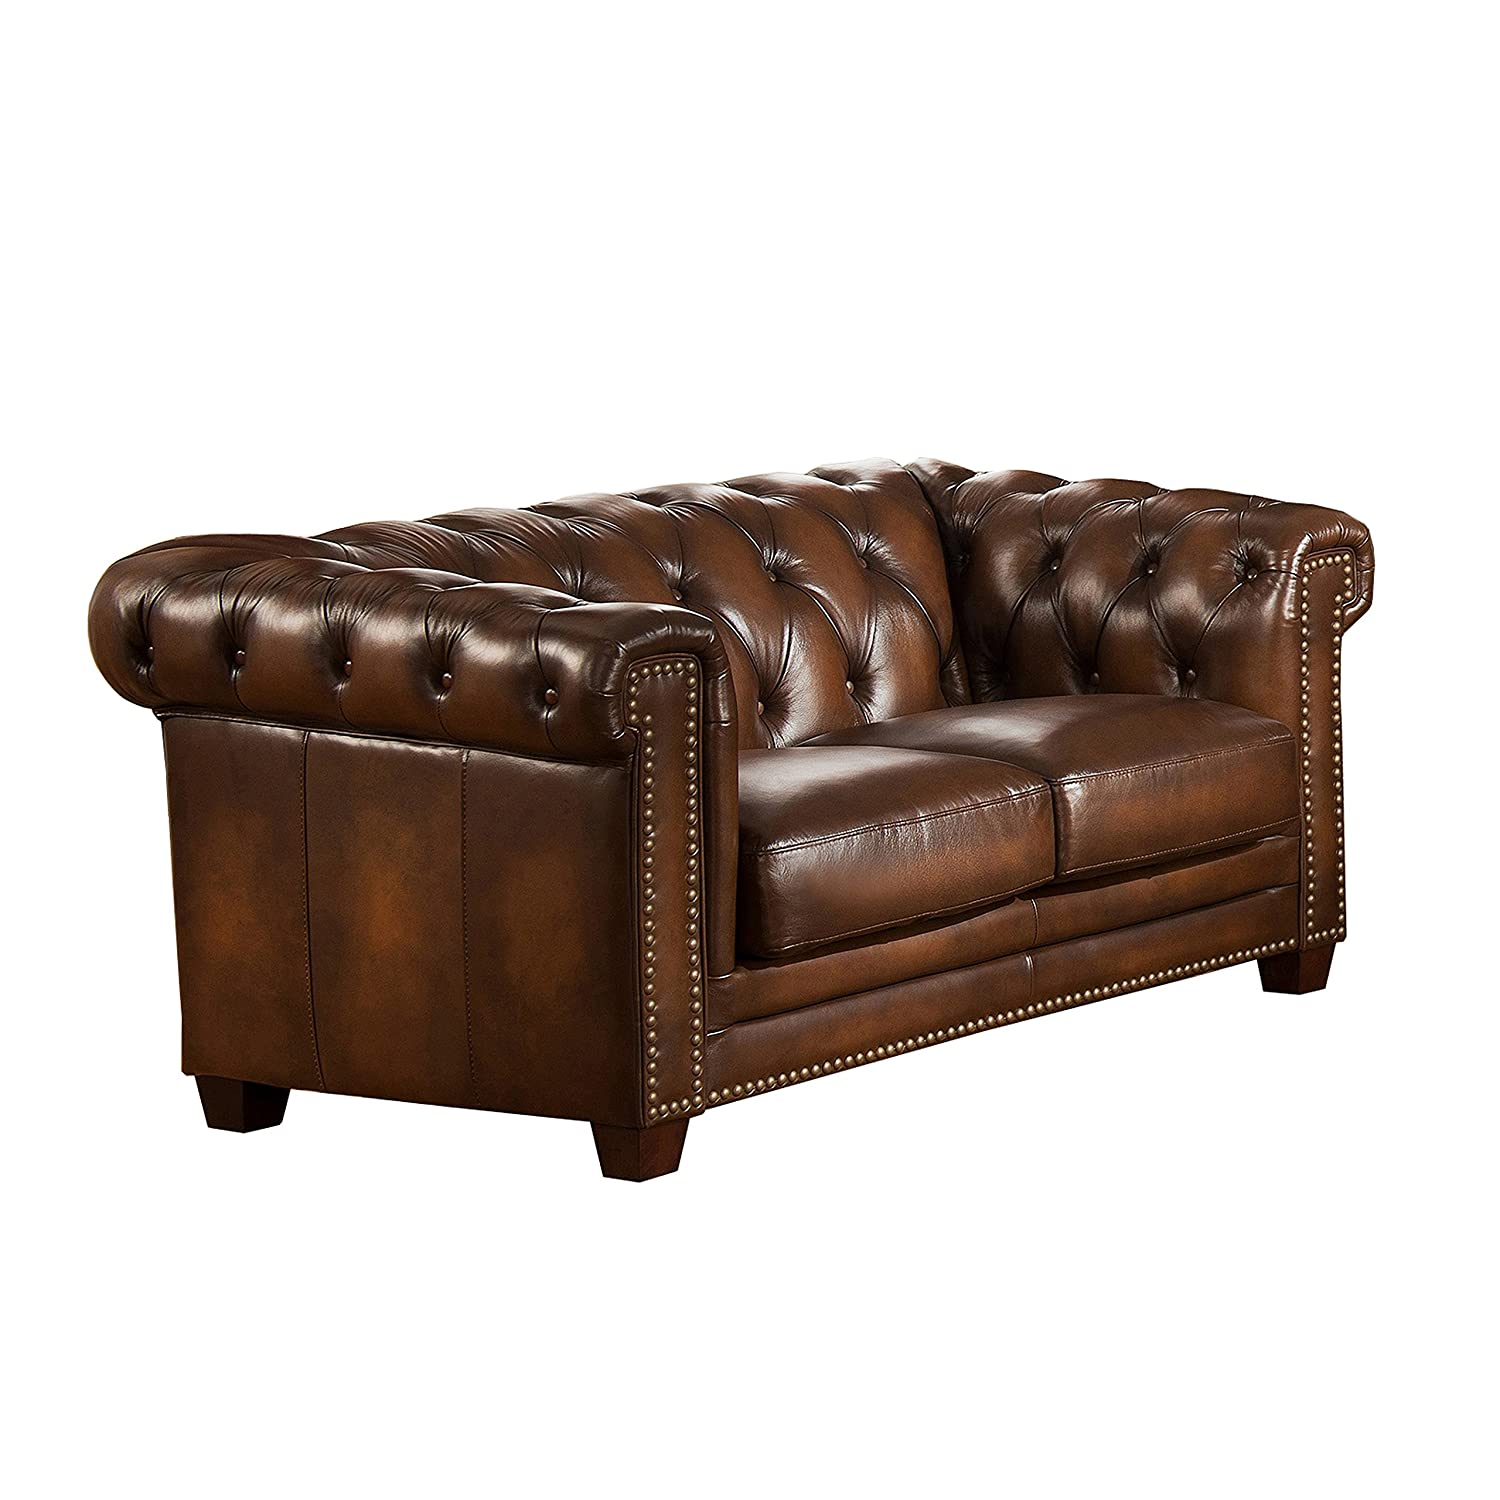 Amazon Amax Leather Stanley Park II 100% Leather Sofa and